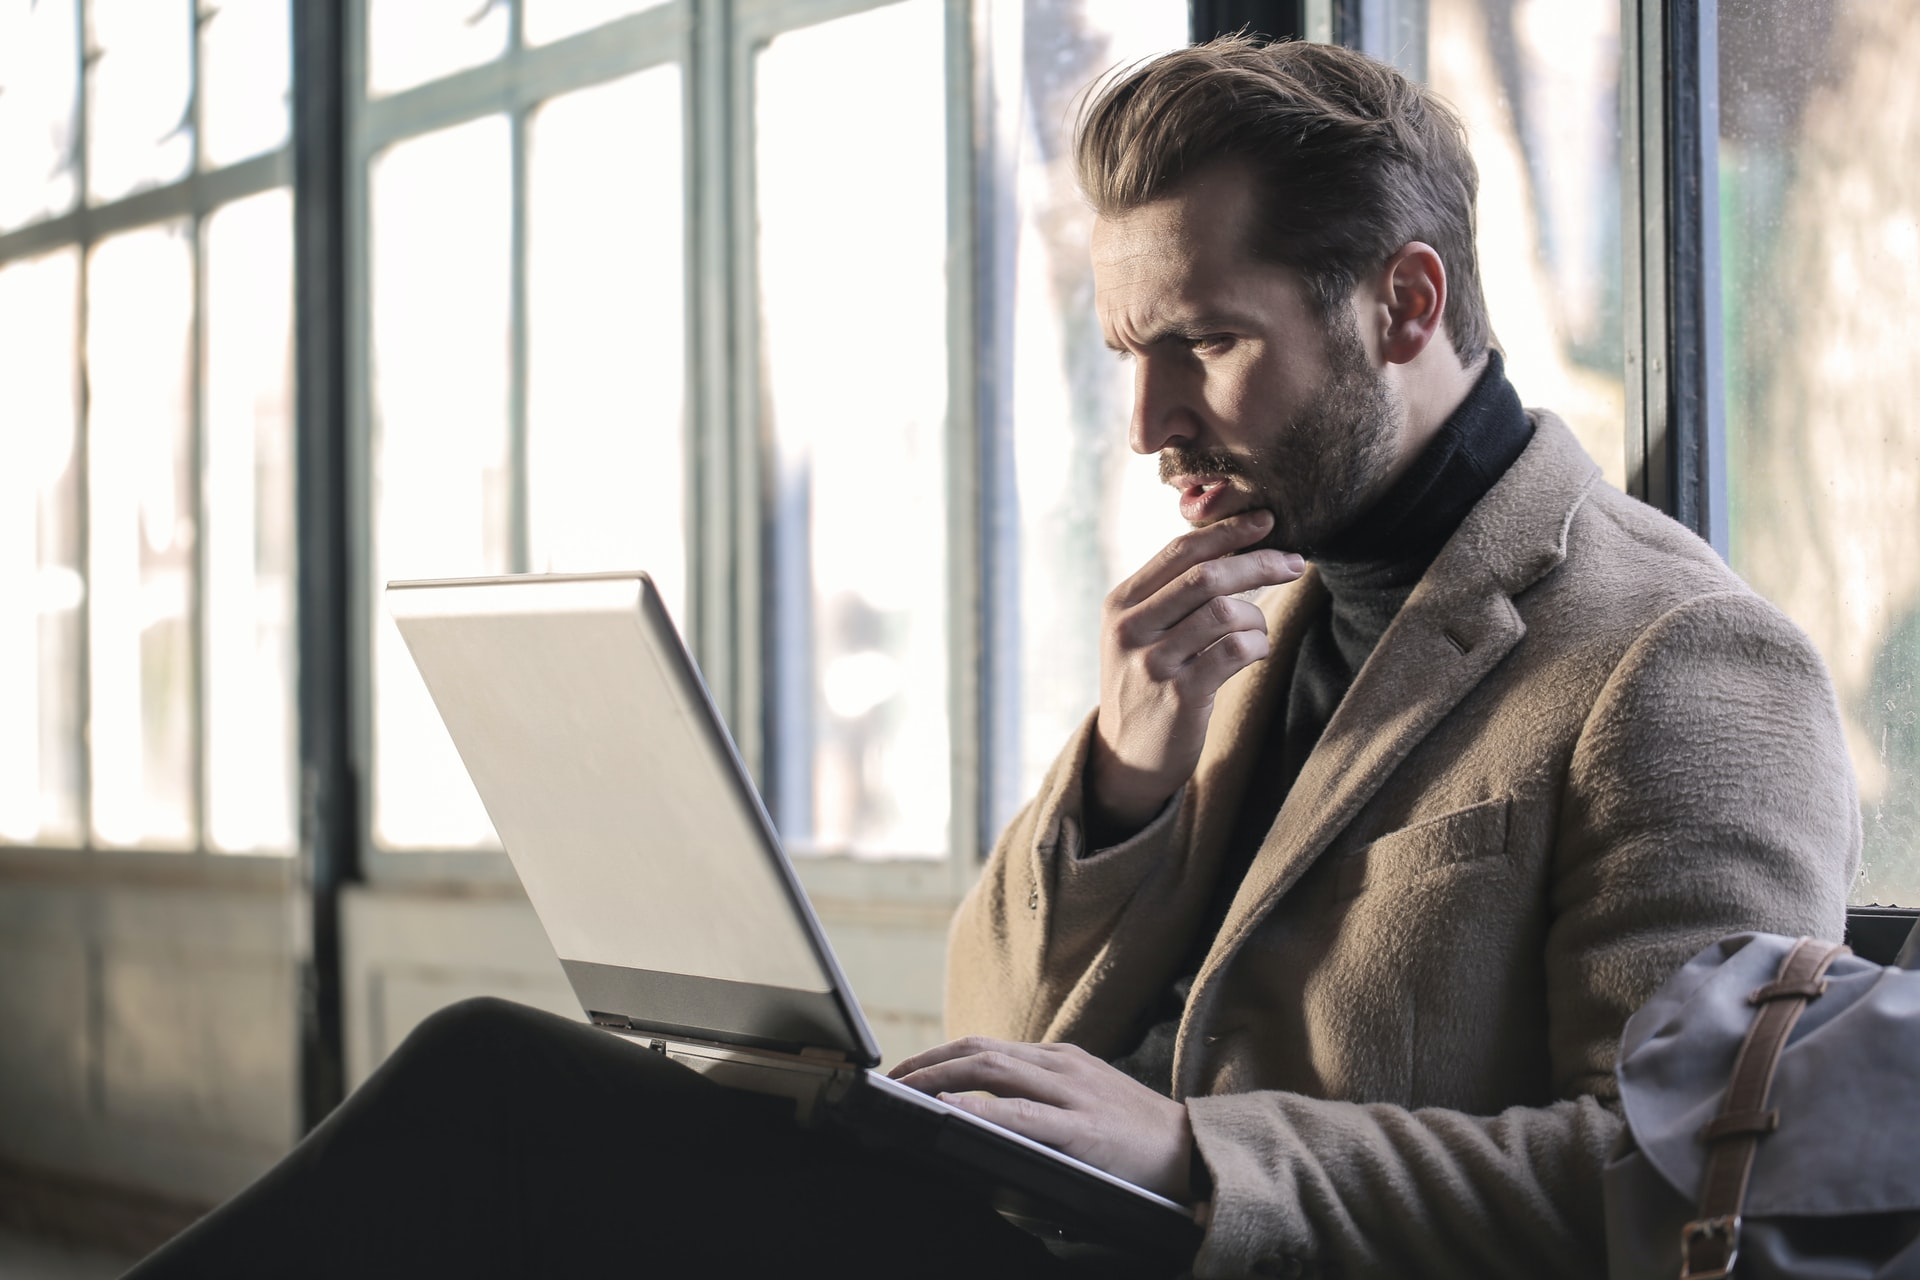 Man sitting with laptop and a confused look on his face